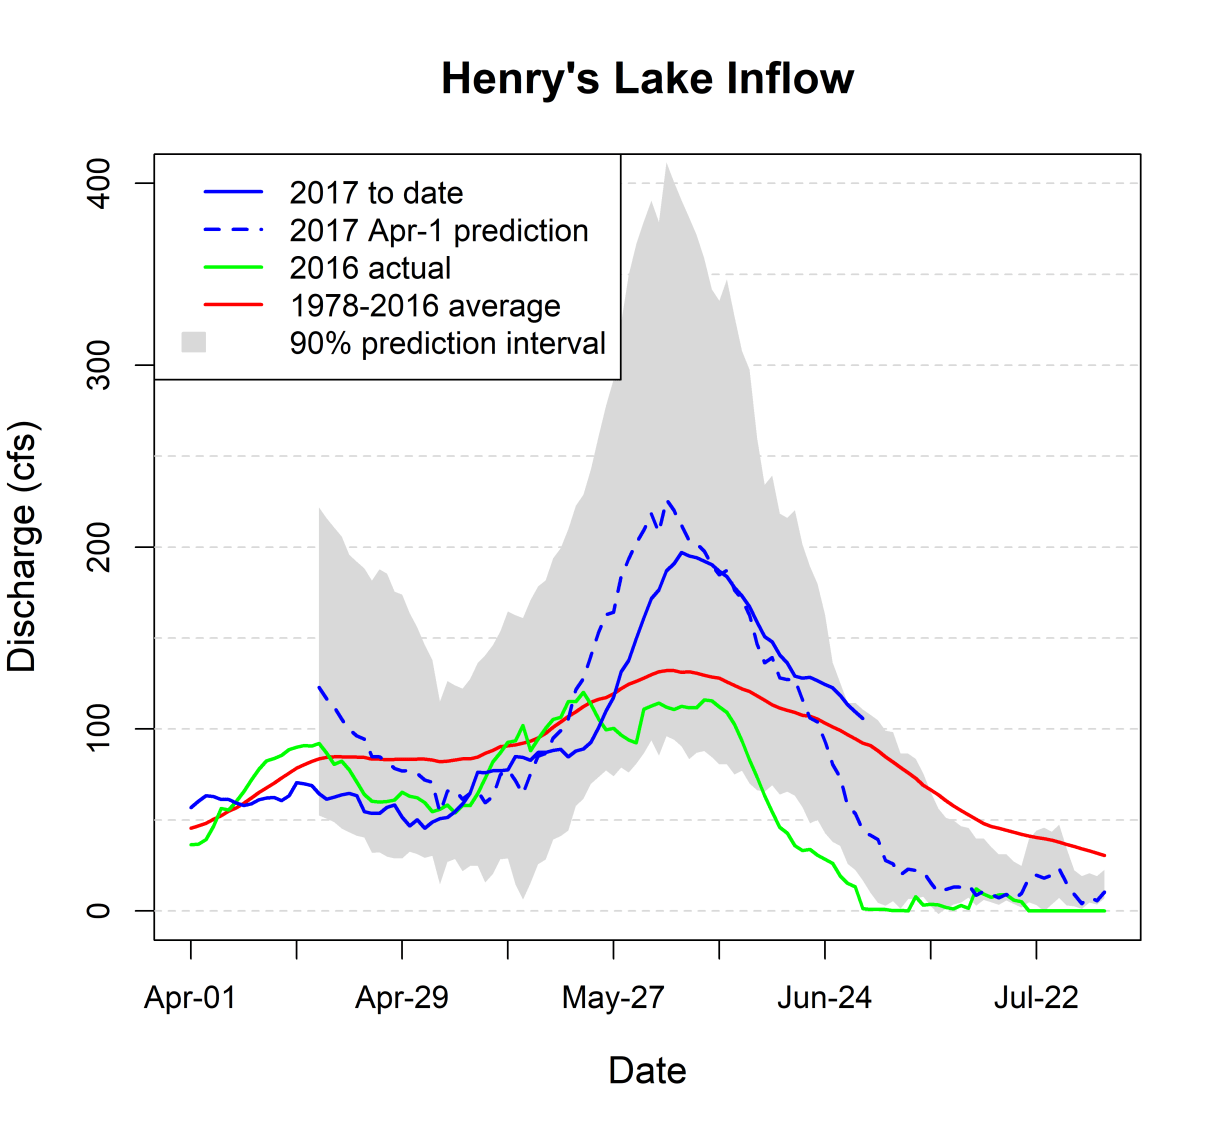 Graph of inflow to Henry's Lake.